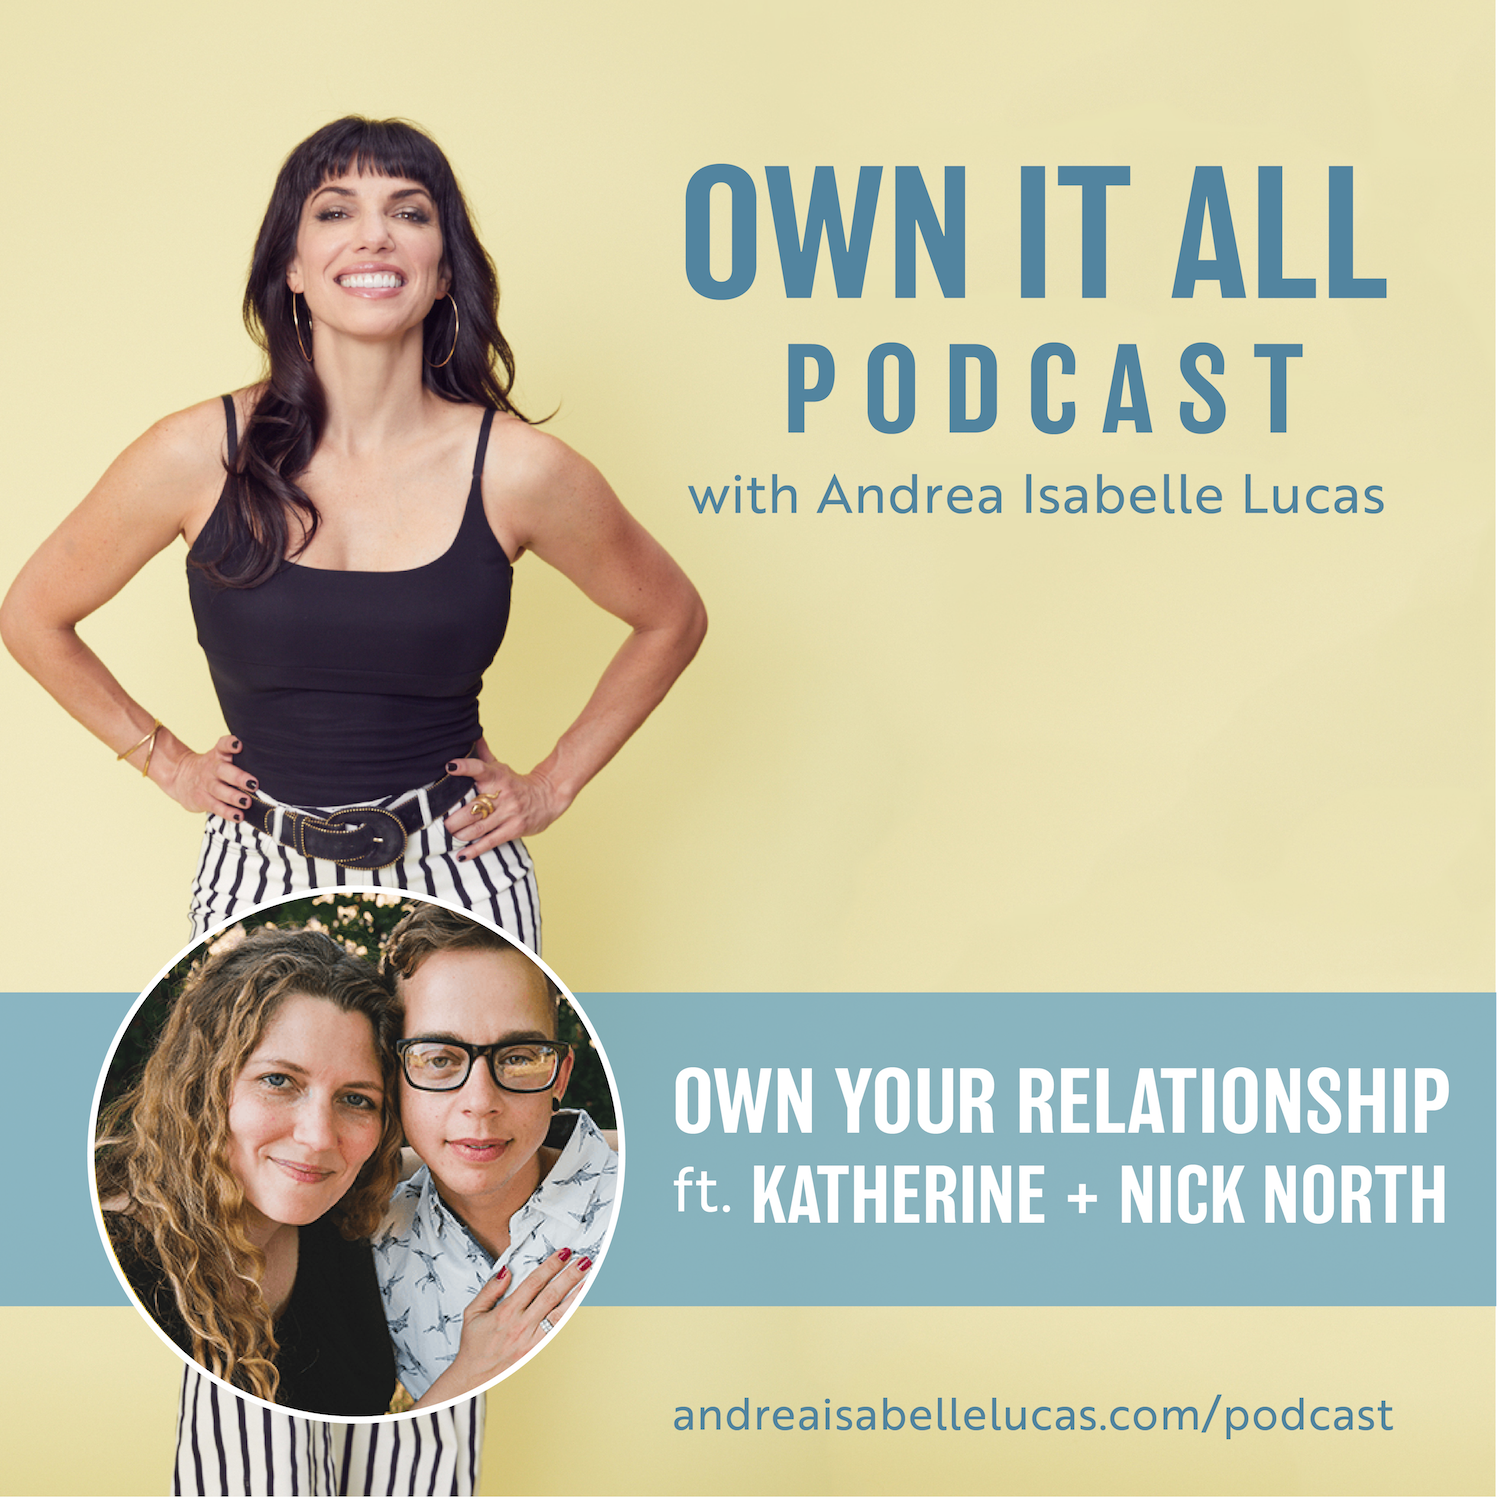 OWN IT ALL - OWN YOUR RELATIONSHIP